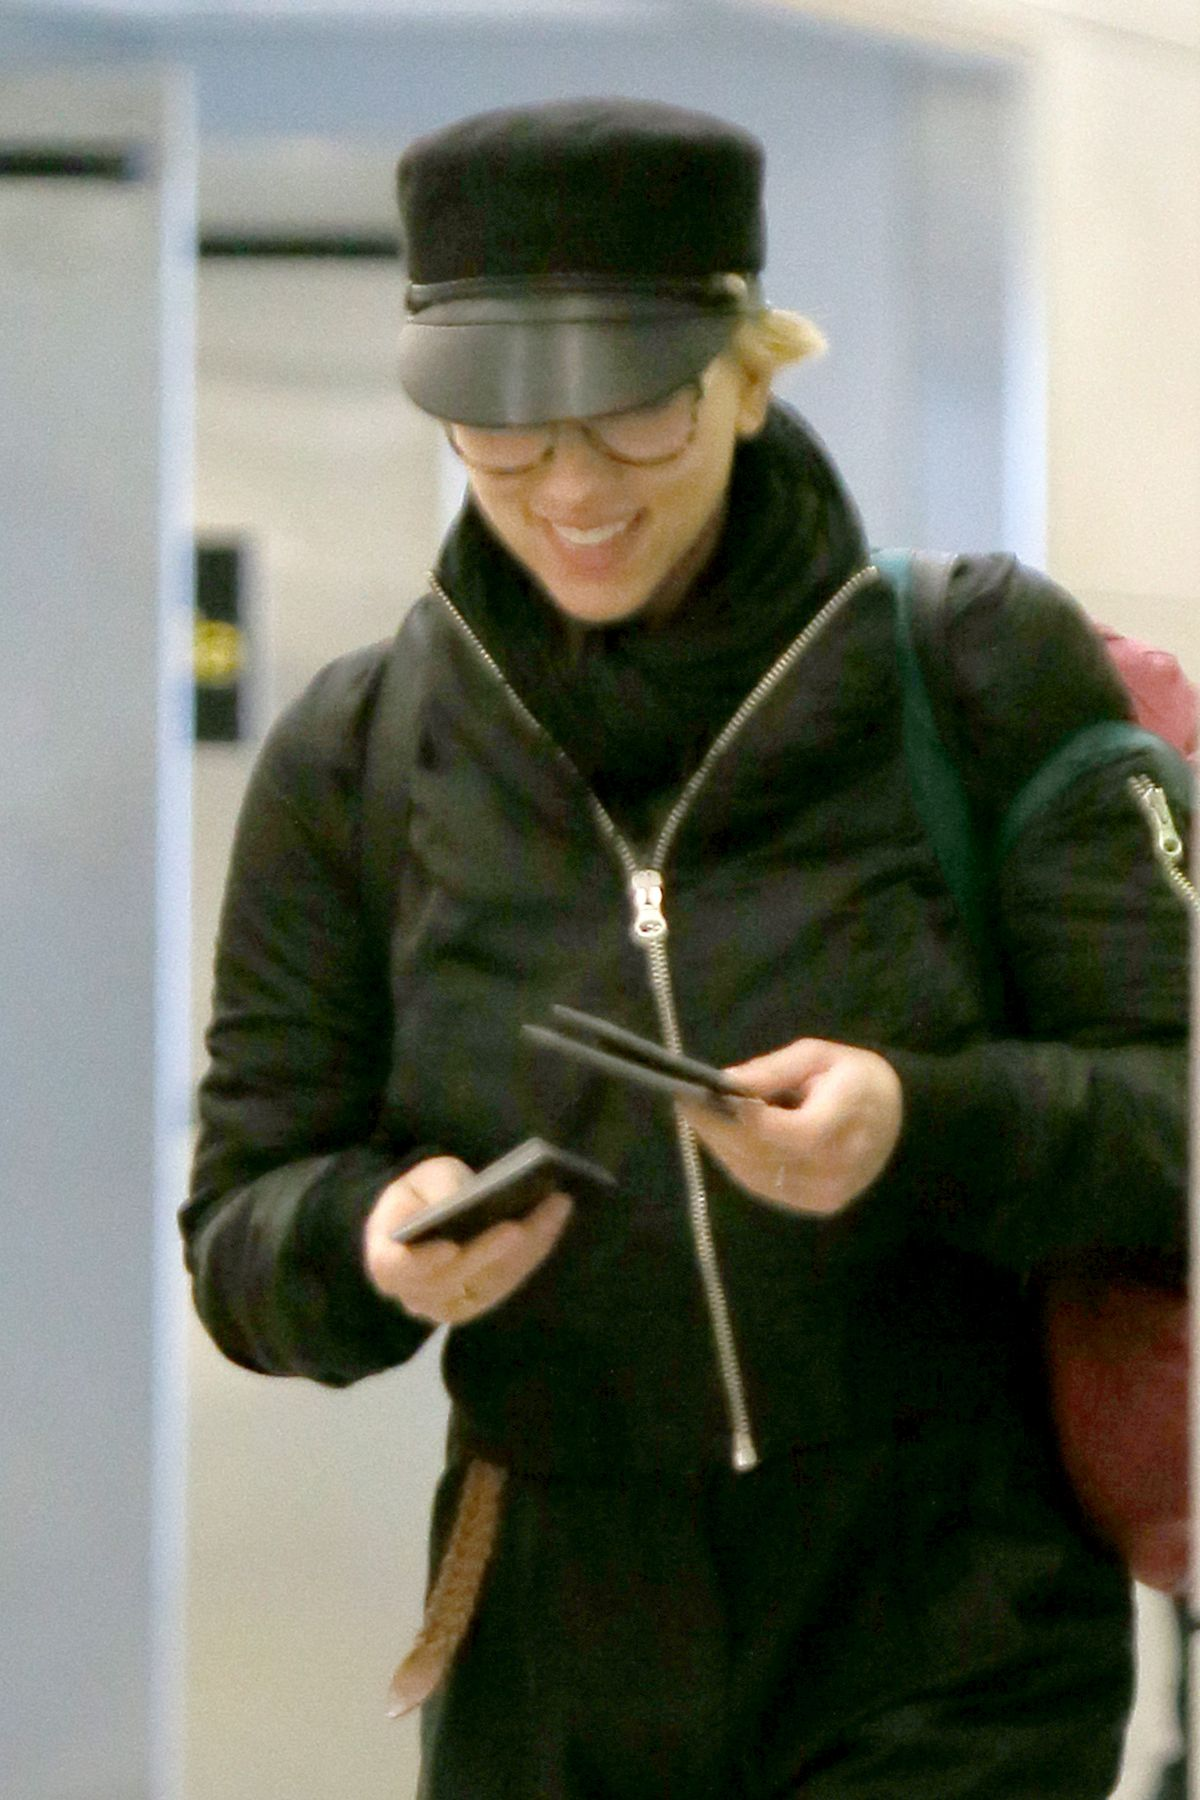 SCARLETT JOHANSSON at JFK Airport in New York 10/31/2016